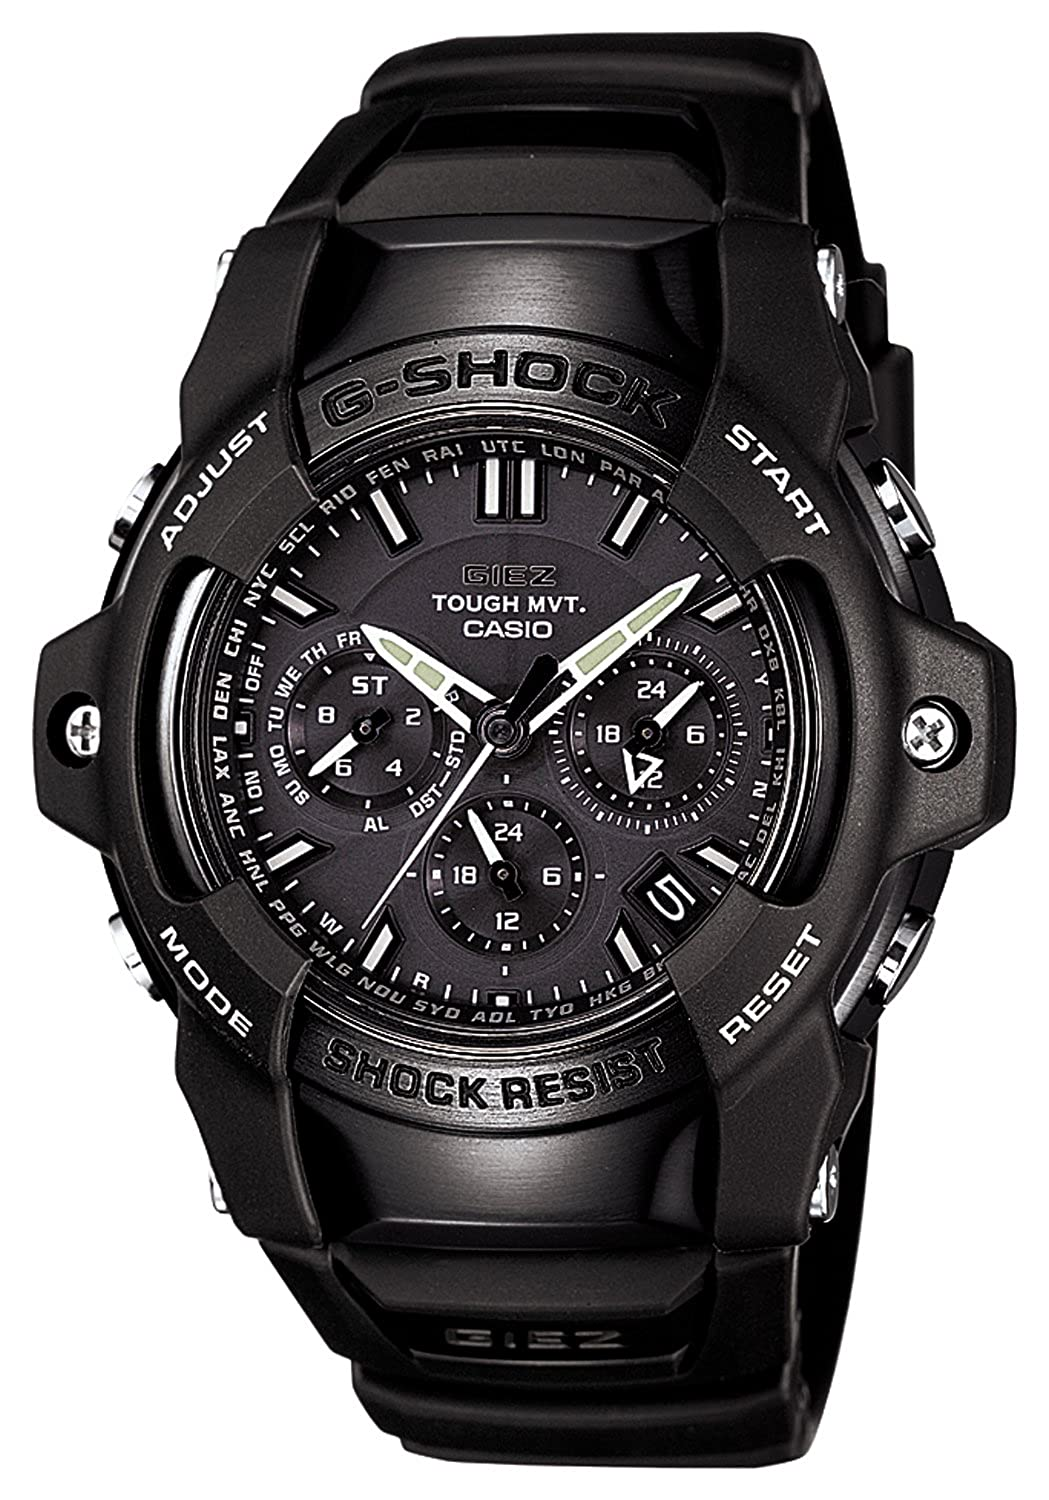 Amazon.com: Casio watch G-SHOCK GIEZ Tafusora MULTIBAND radio clock 6 GS-1400B-1AJF Men [Japan Import]: Watches